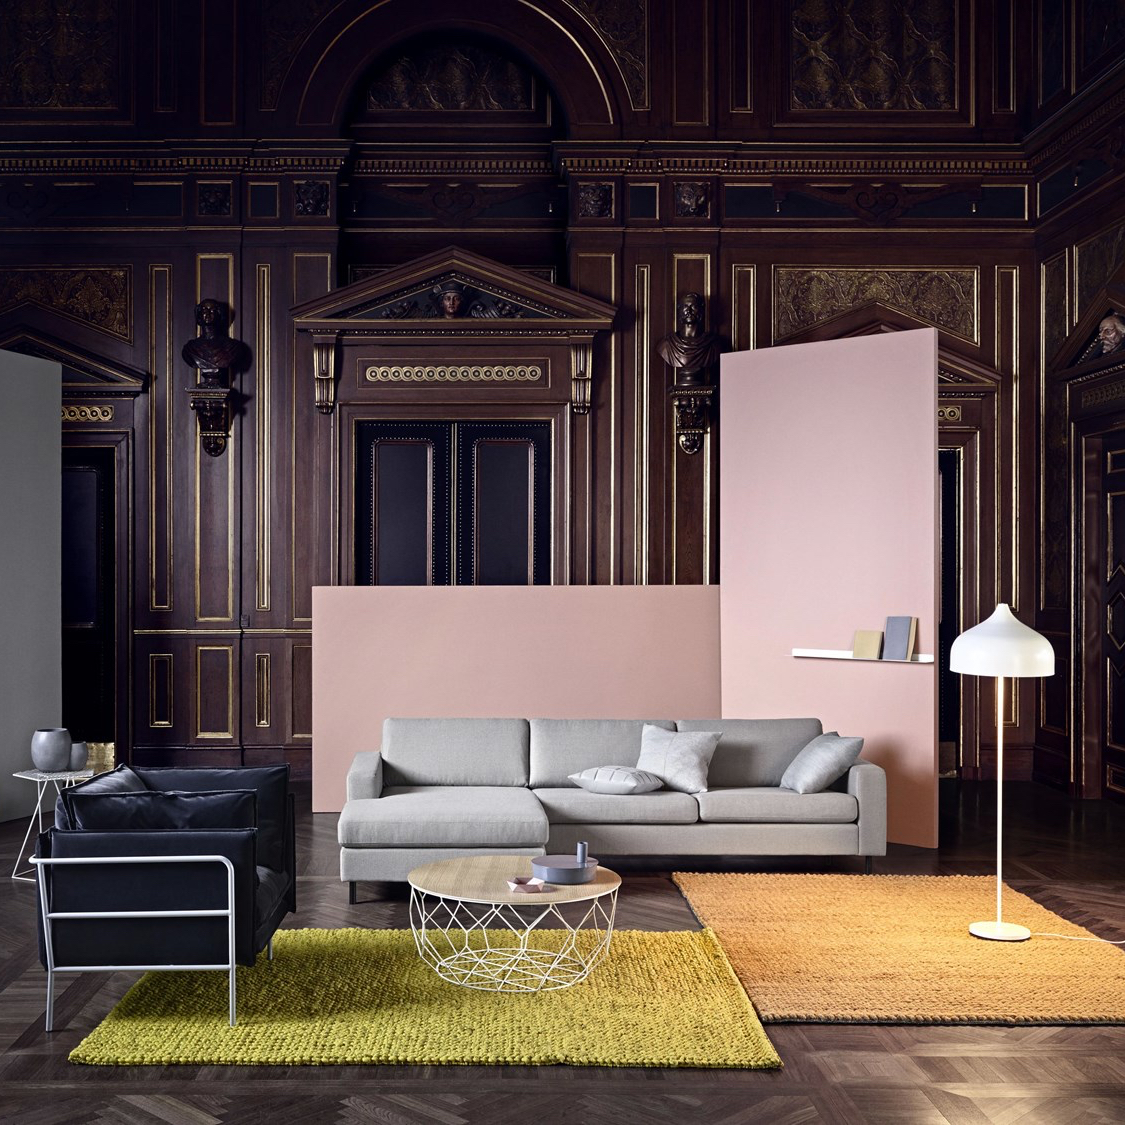 The Scandinavia corner sofa